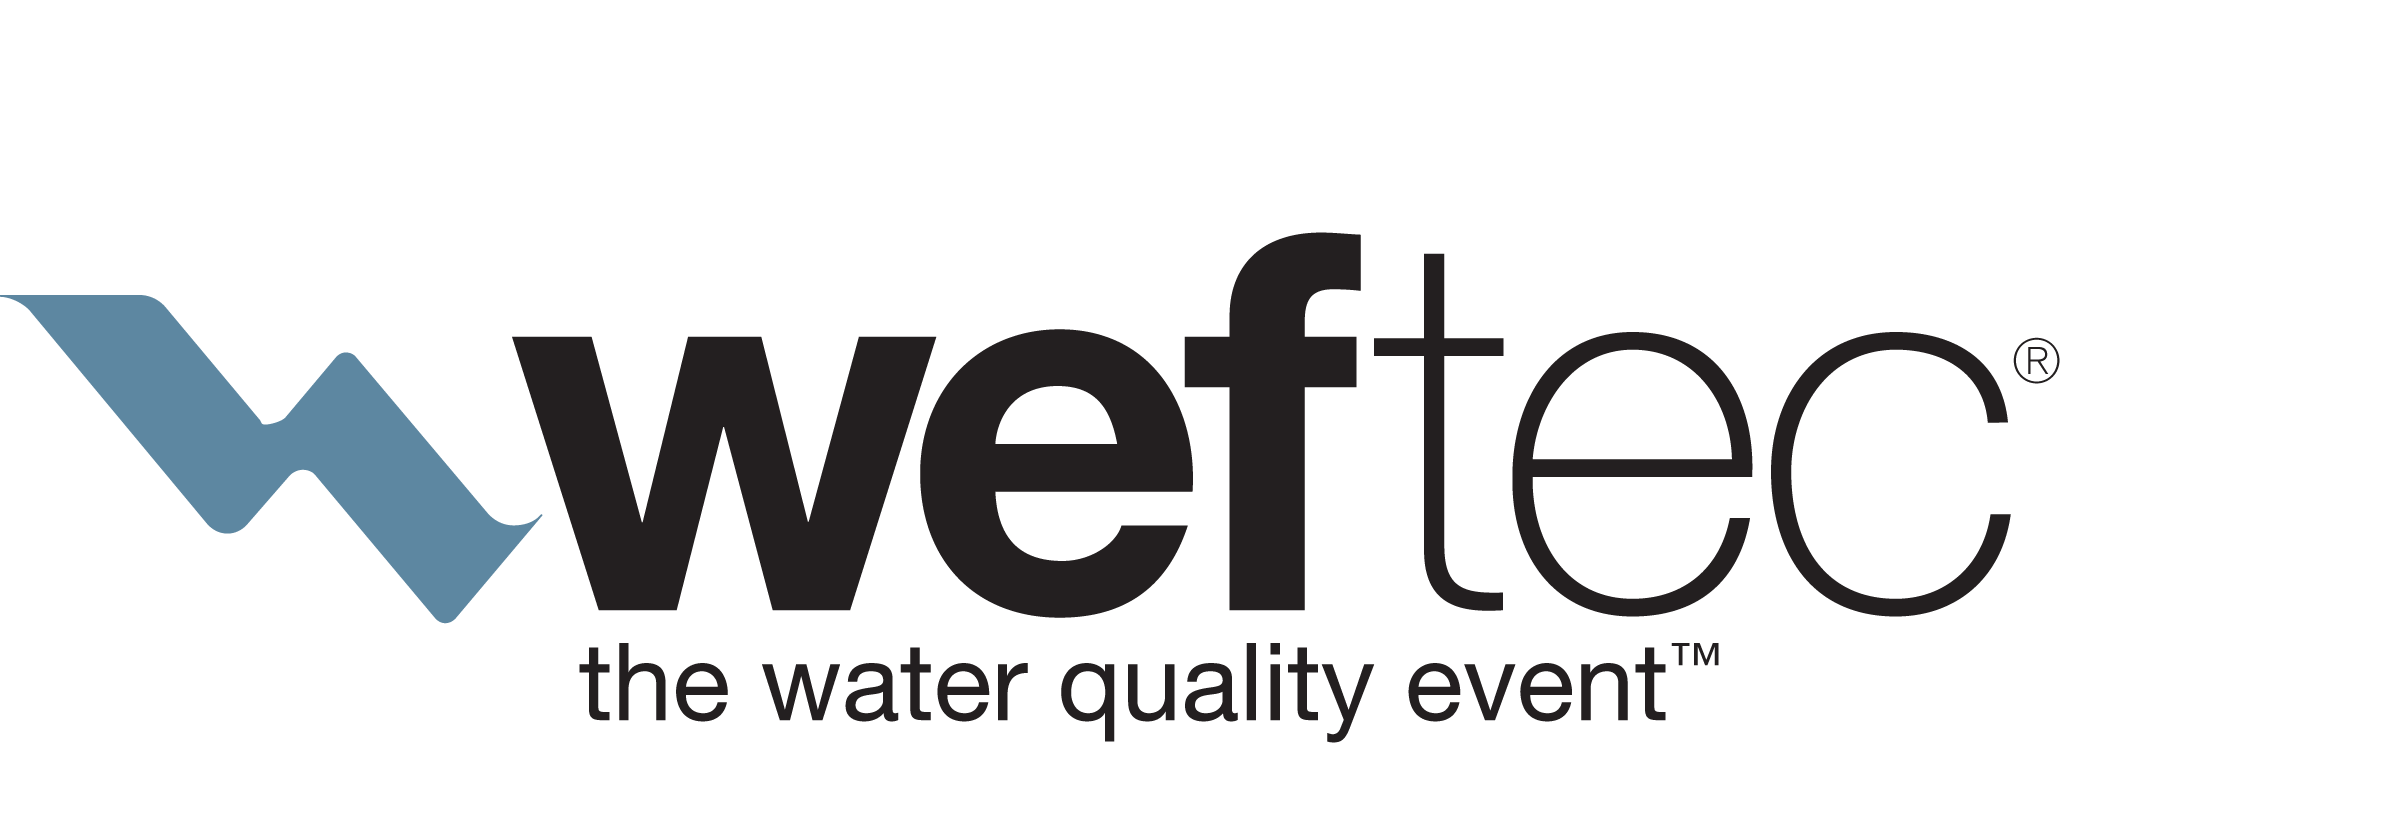 WEFTEC 2020 in New Orleans!